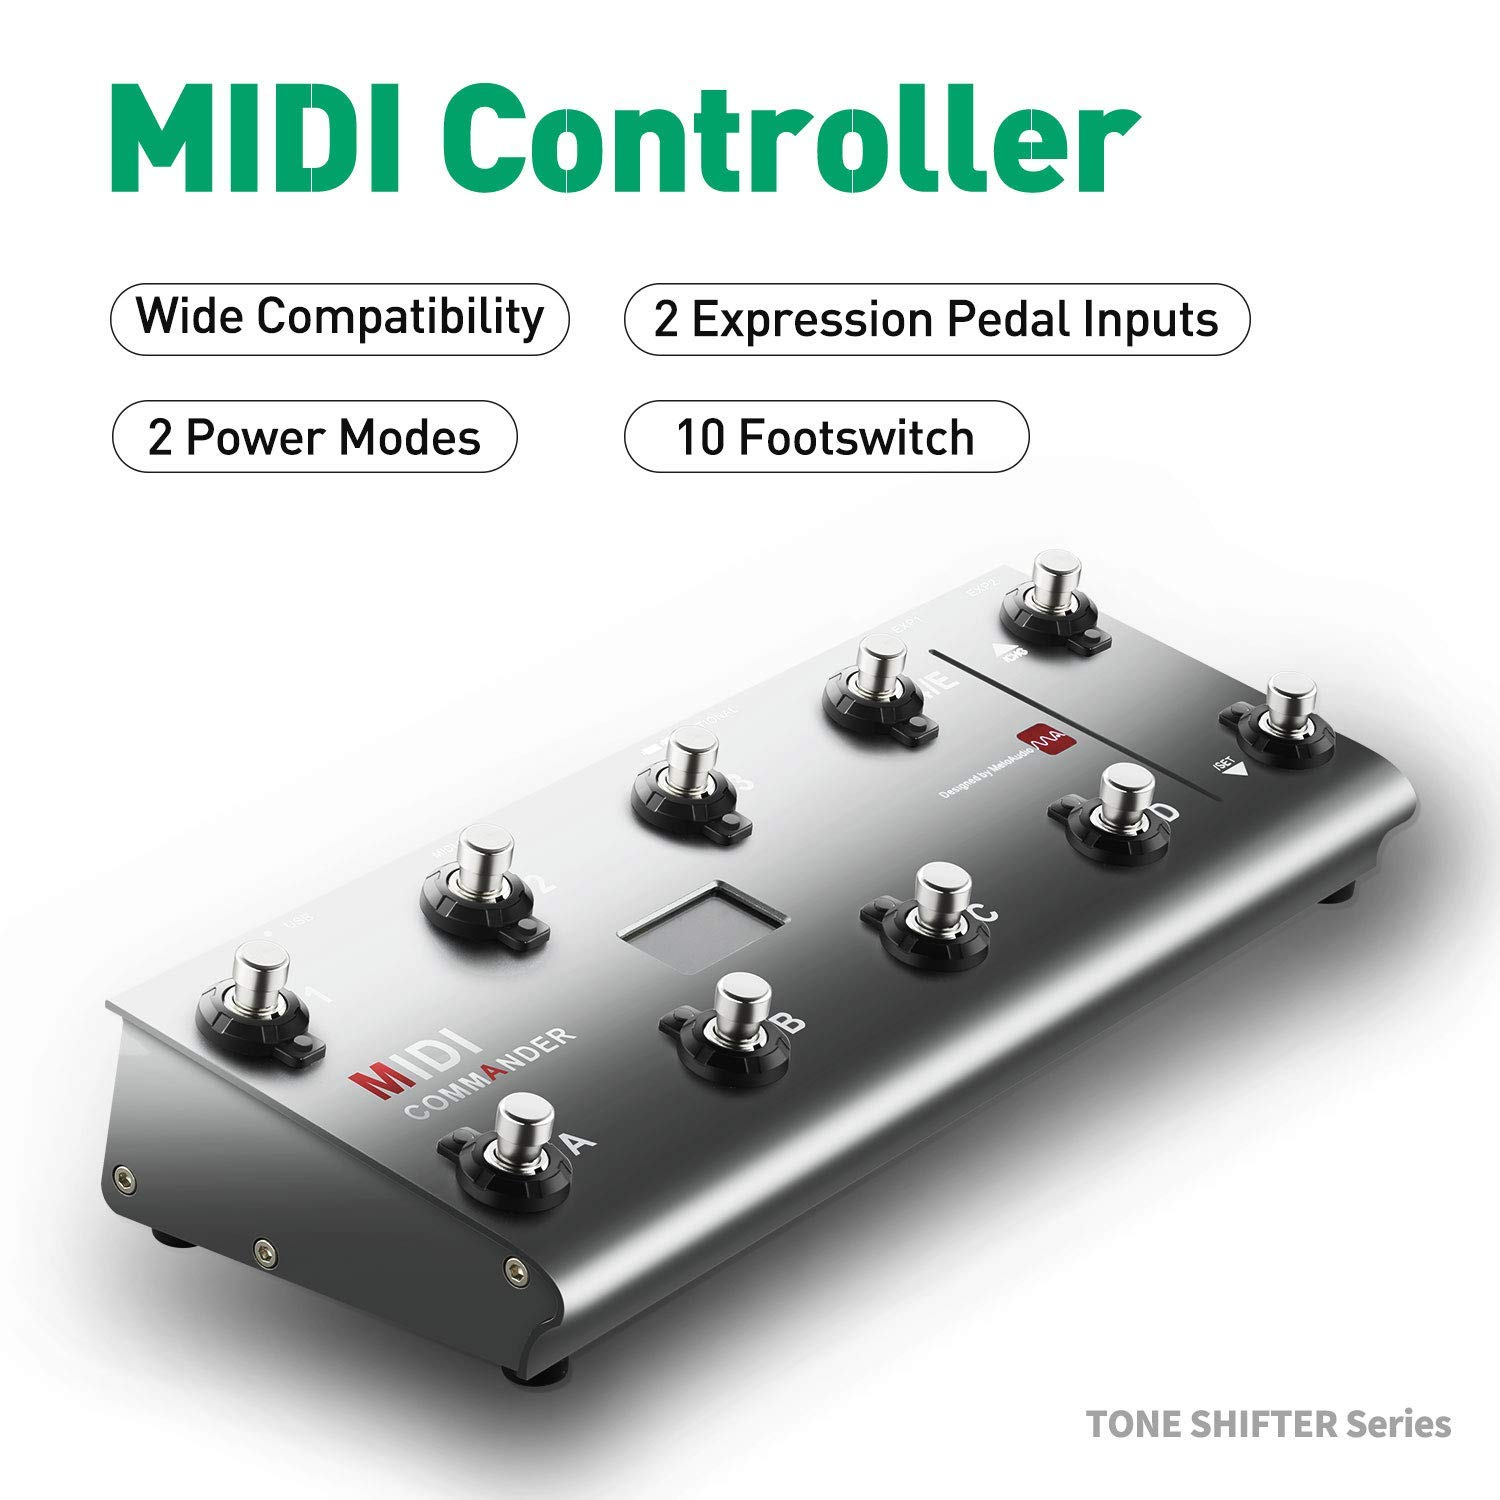 Sports & Entertainment Midi Commander Guitar Portable Usb Midi Foot Controller With 10 Foot Switches 2 Expression Pedal Jacks 8 Host Presets Guitar Parts & Accessories